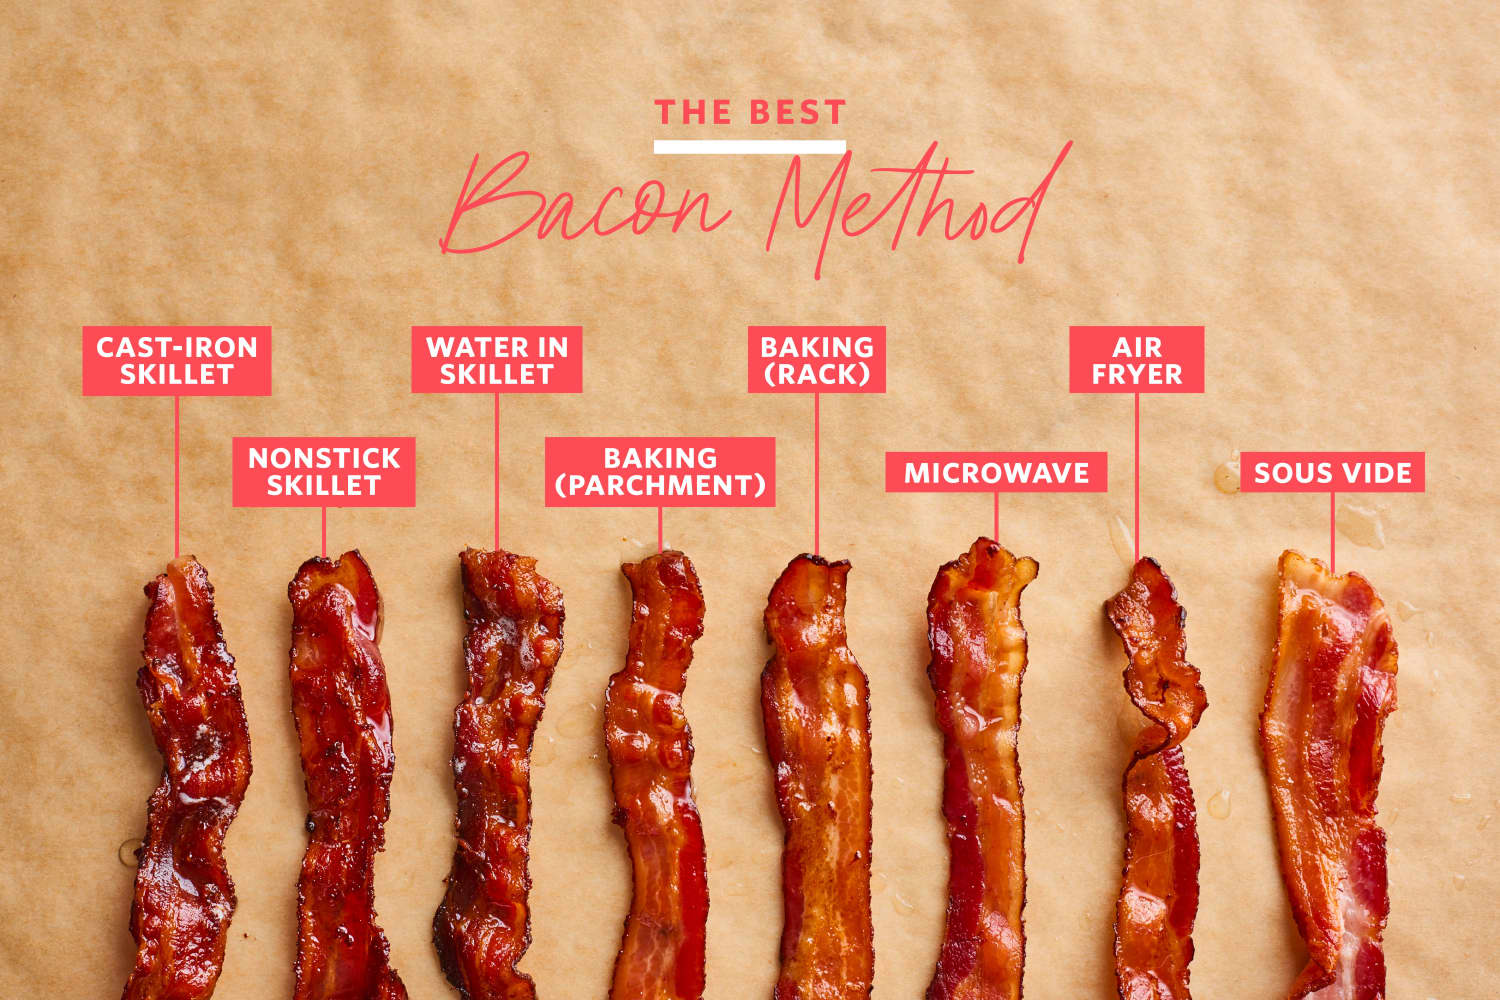 We Tried 8 Methods of Cooking Bacon and Found an Absolute Winner